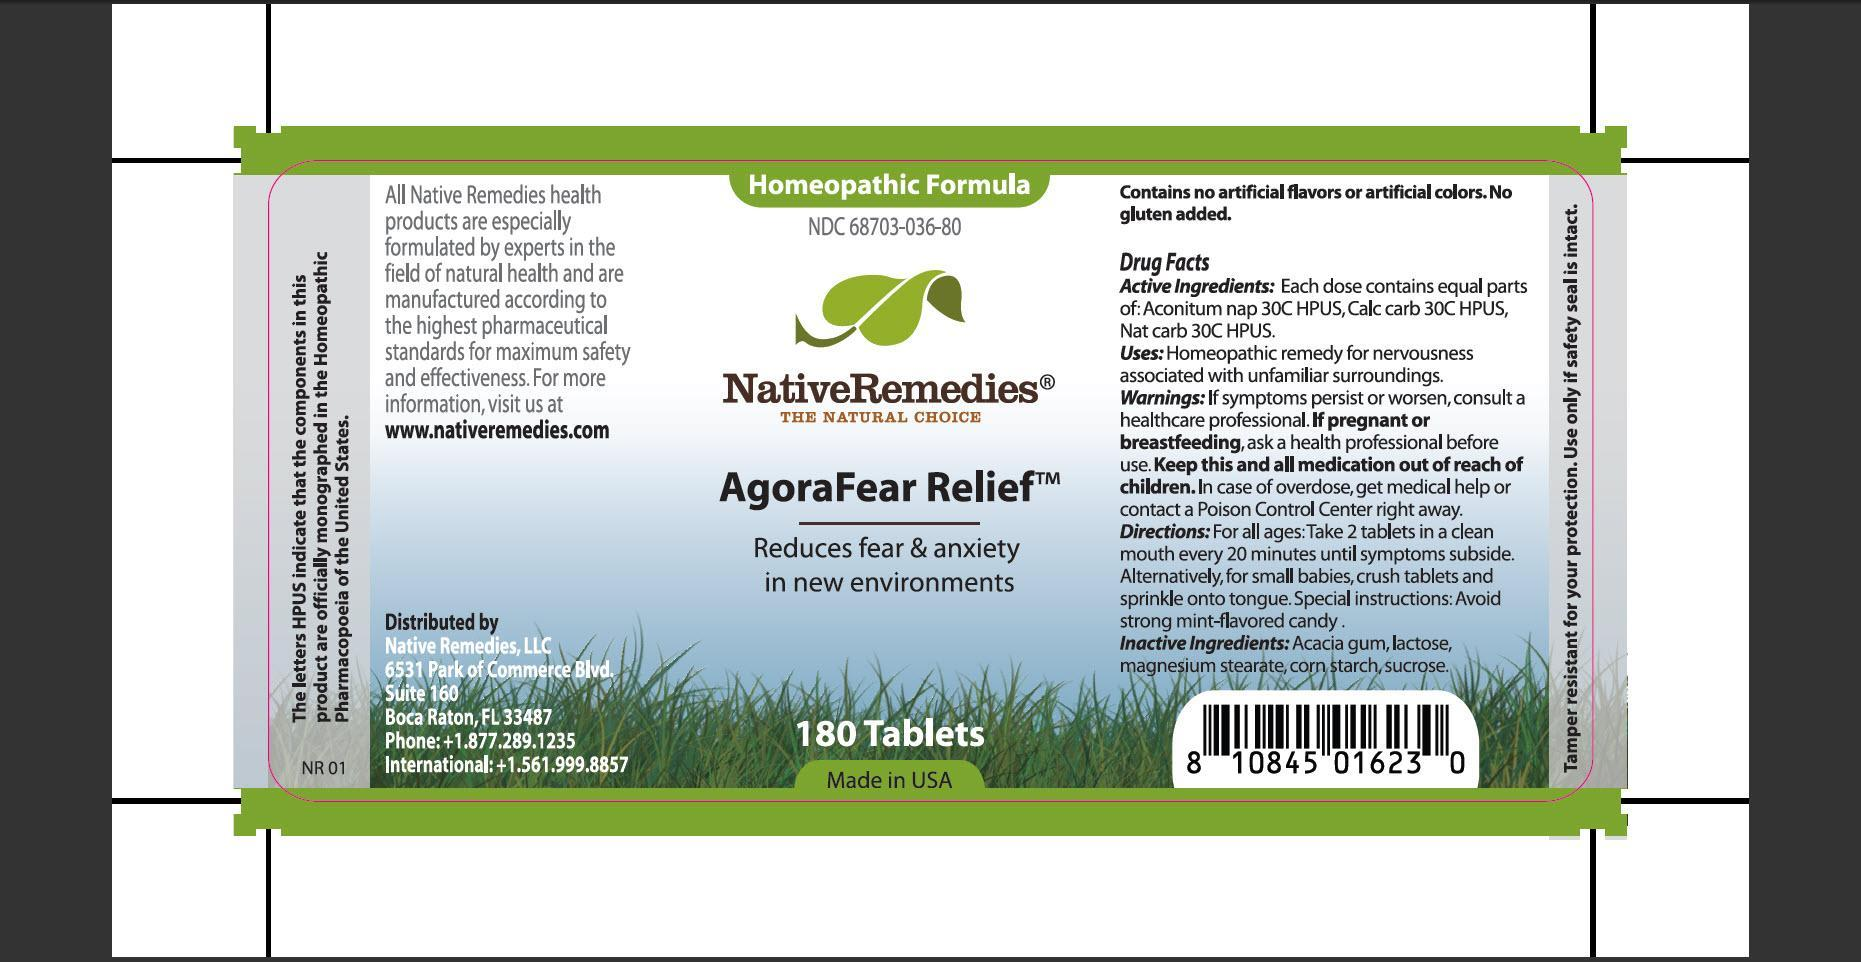 Agorafear Relief (Aconitum Nap, Calc Carb, Nat Carb) Tablet [Native Remedies, Llc]